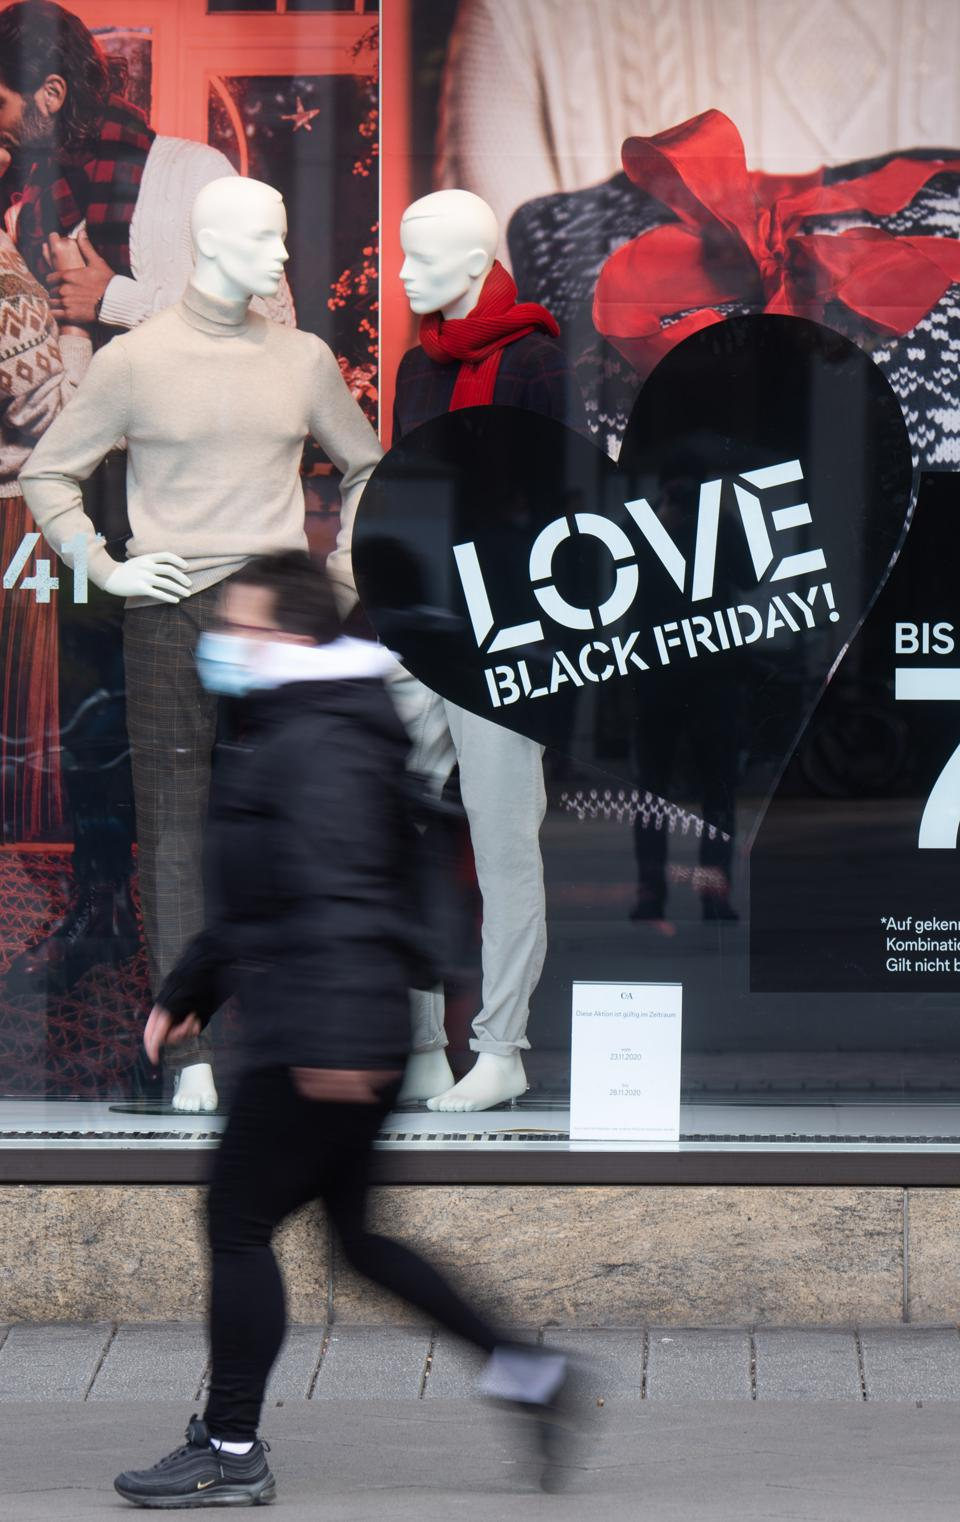 Pre-Christmas business and ″Black Friday″ in Hannover